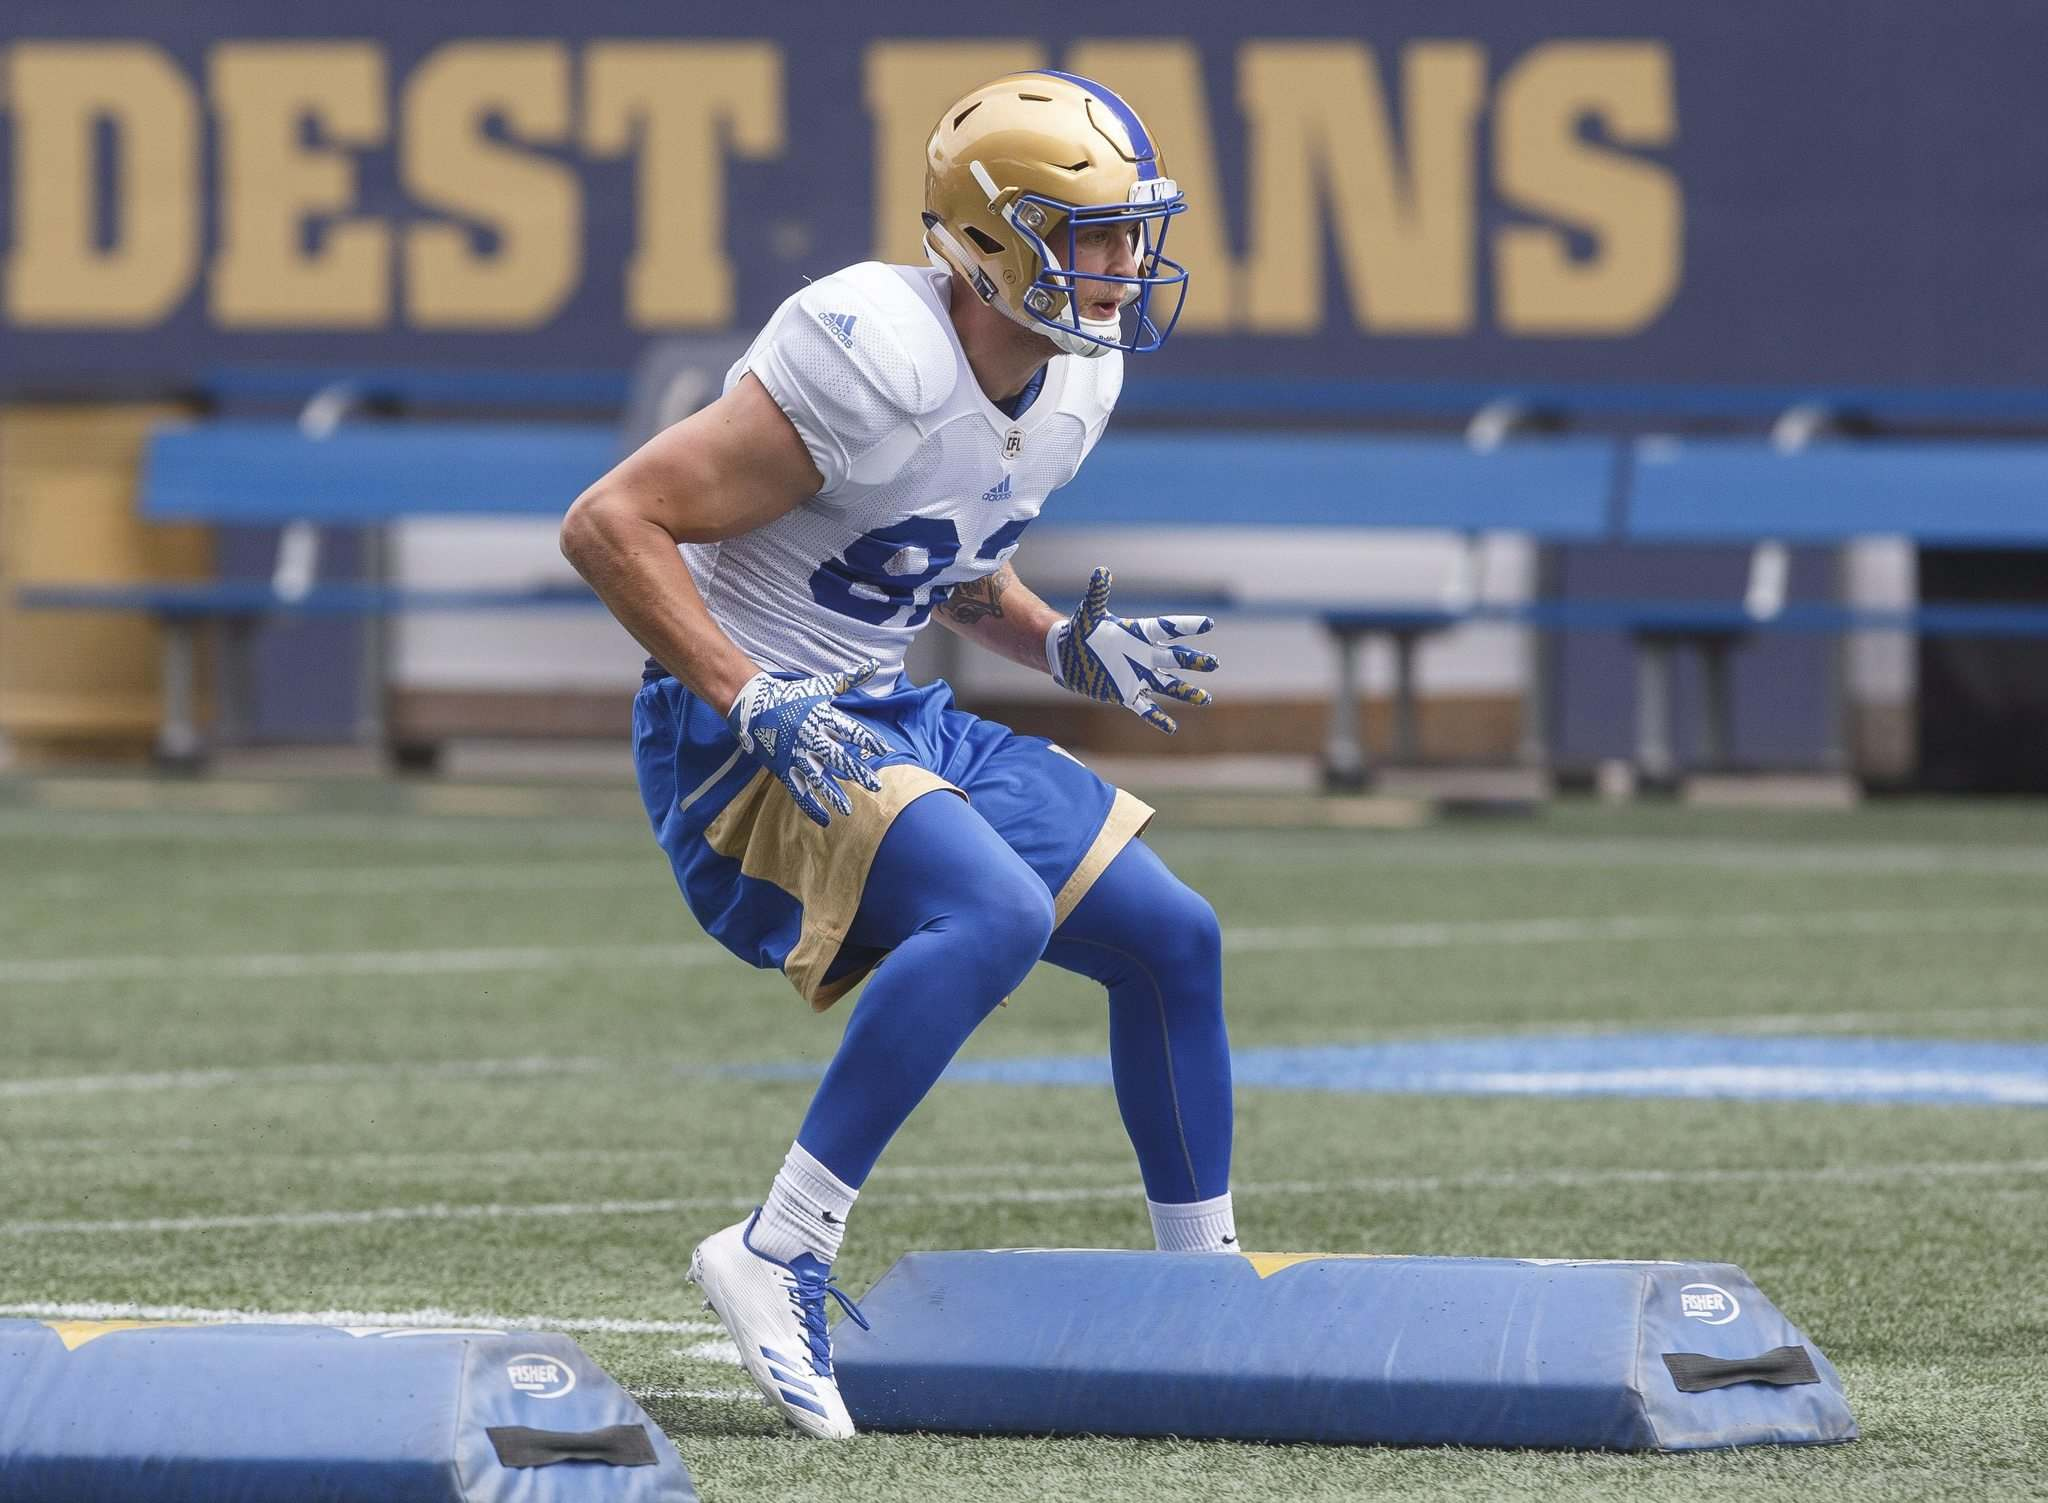 MIKE DEAL / WINNIPEG FREE PRESS</p><p>Blue Bombers receiver Drew Wolitarsky takes part in drills during rookie training camp at Investors Group Field on Thursday.</p>